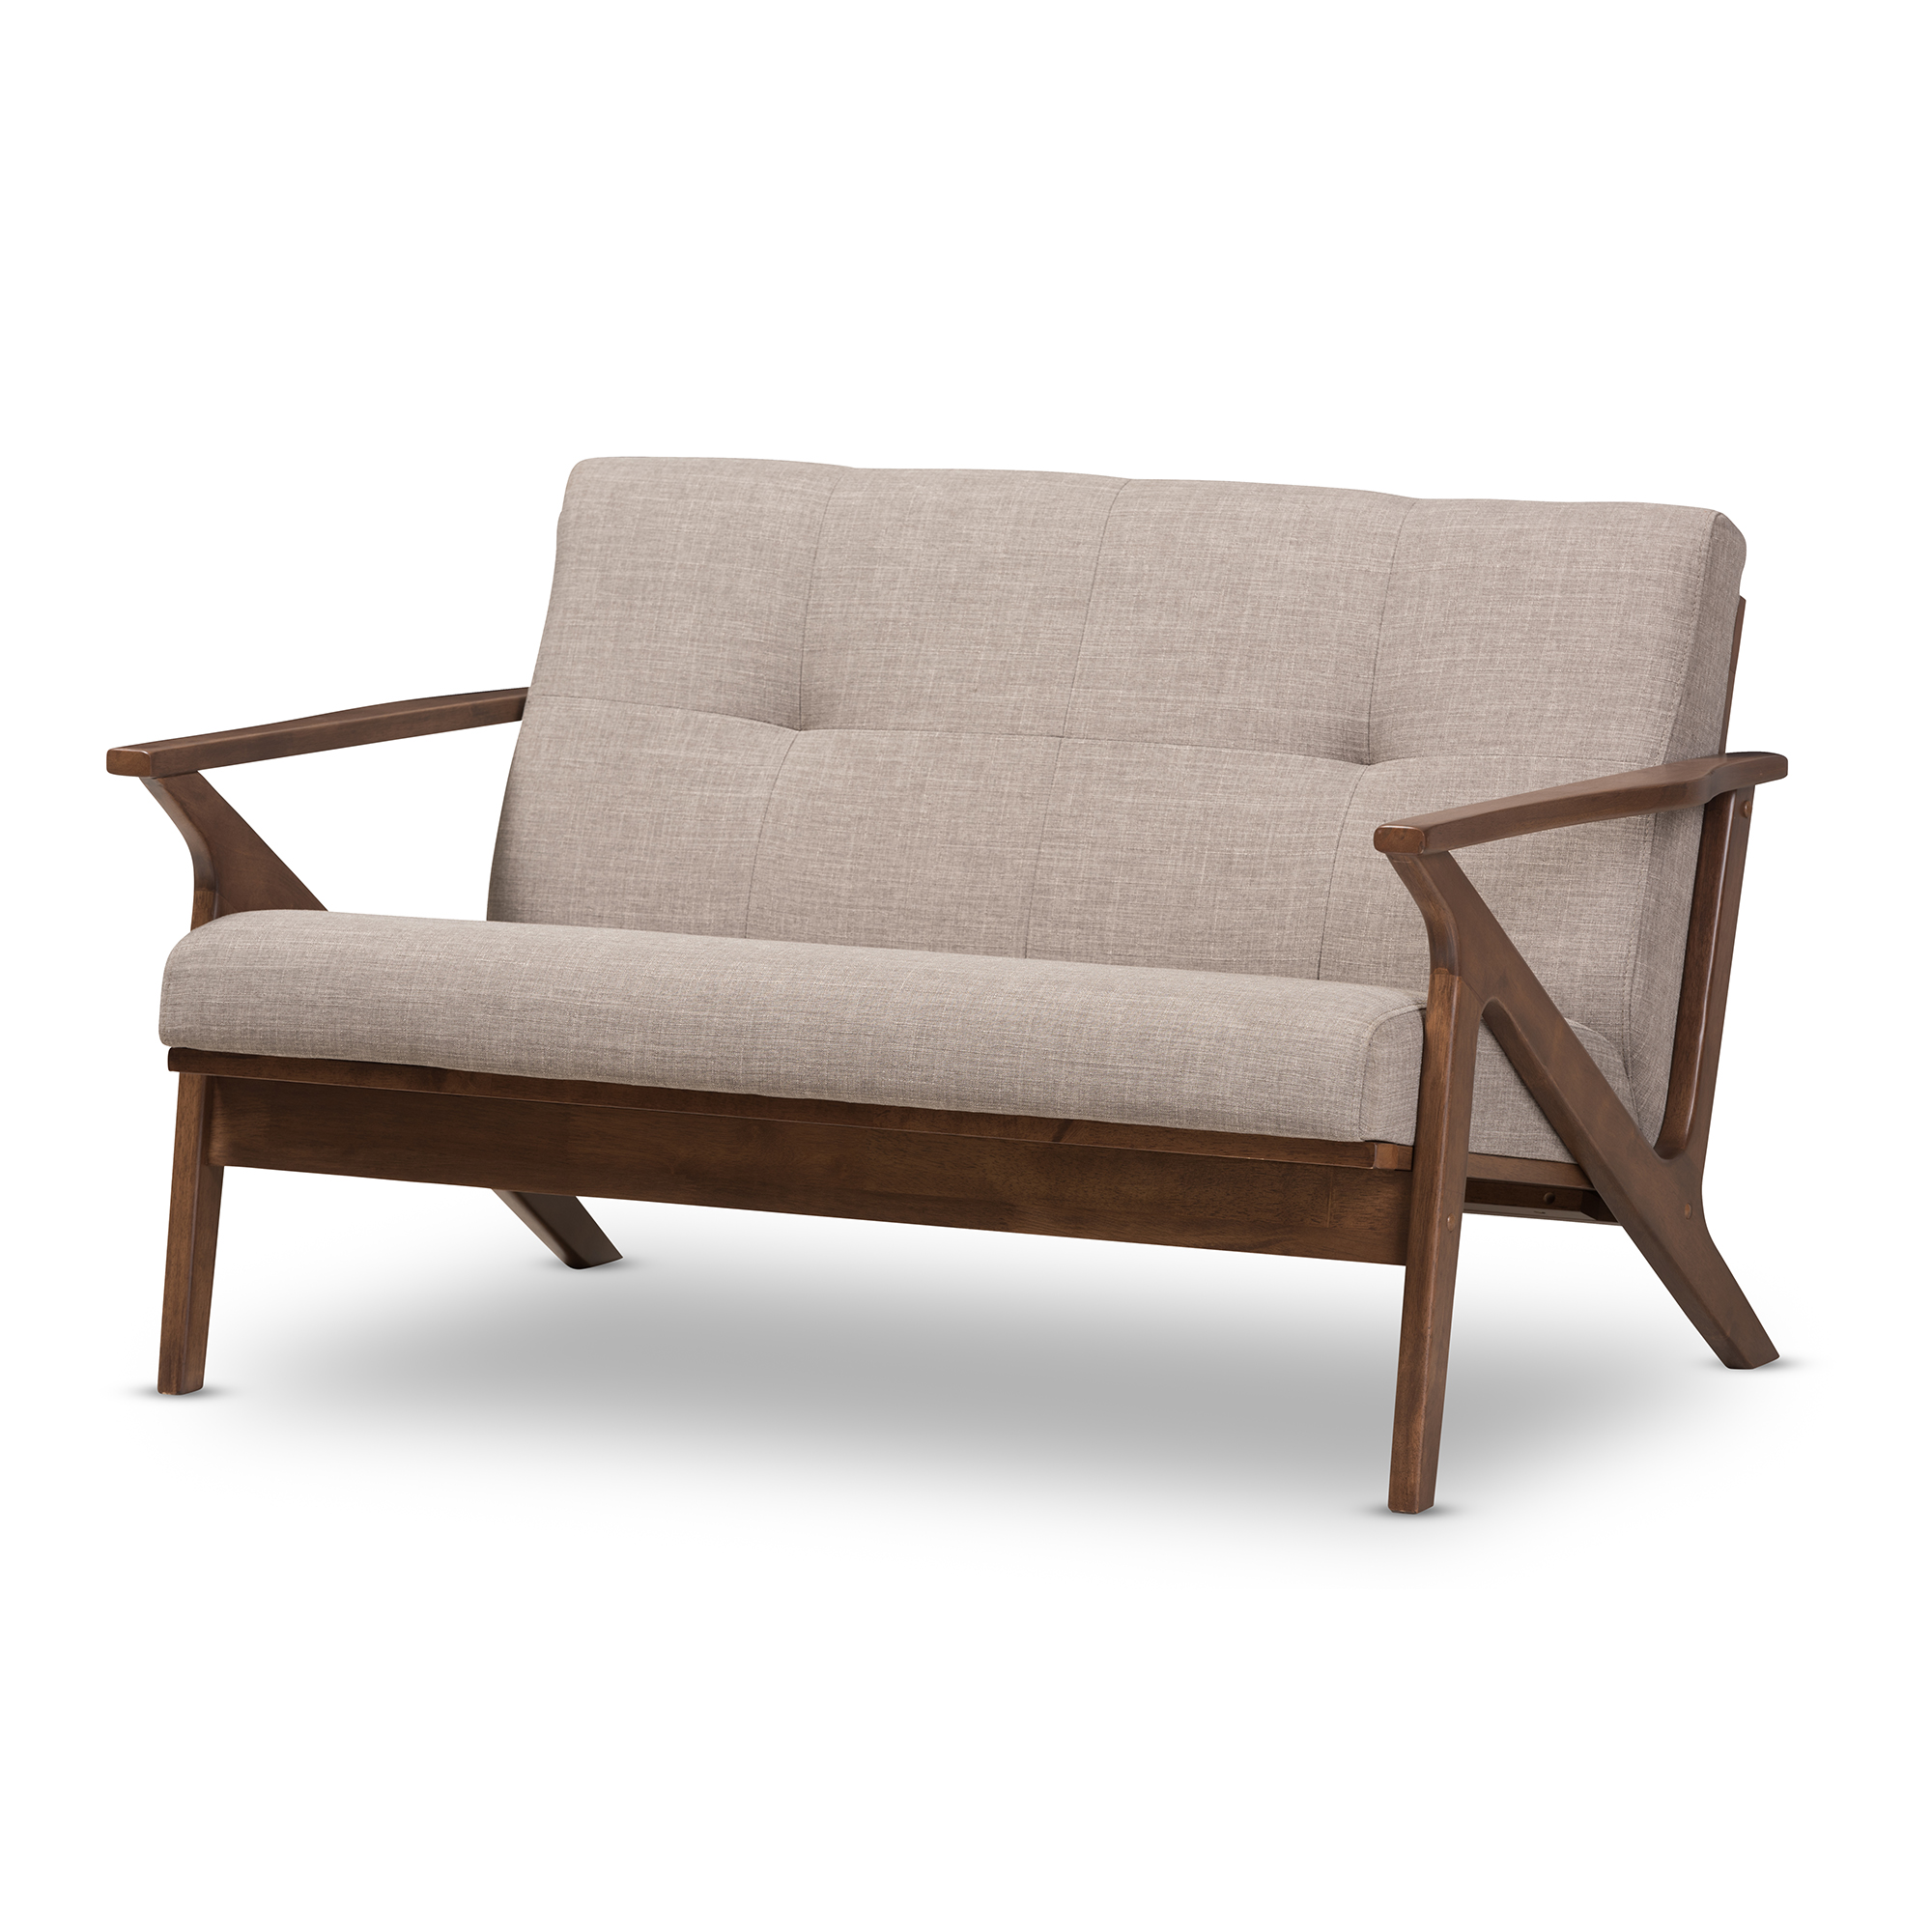 Baxton Studio Bianca Mid-Century Modern Walnut Wood Light Grey Fabric Tufted 2-Seater Loveseat